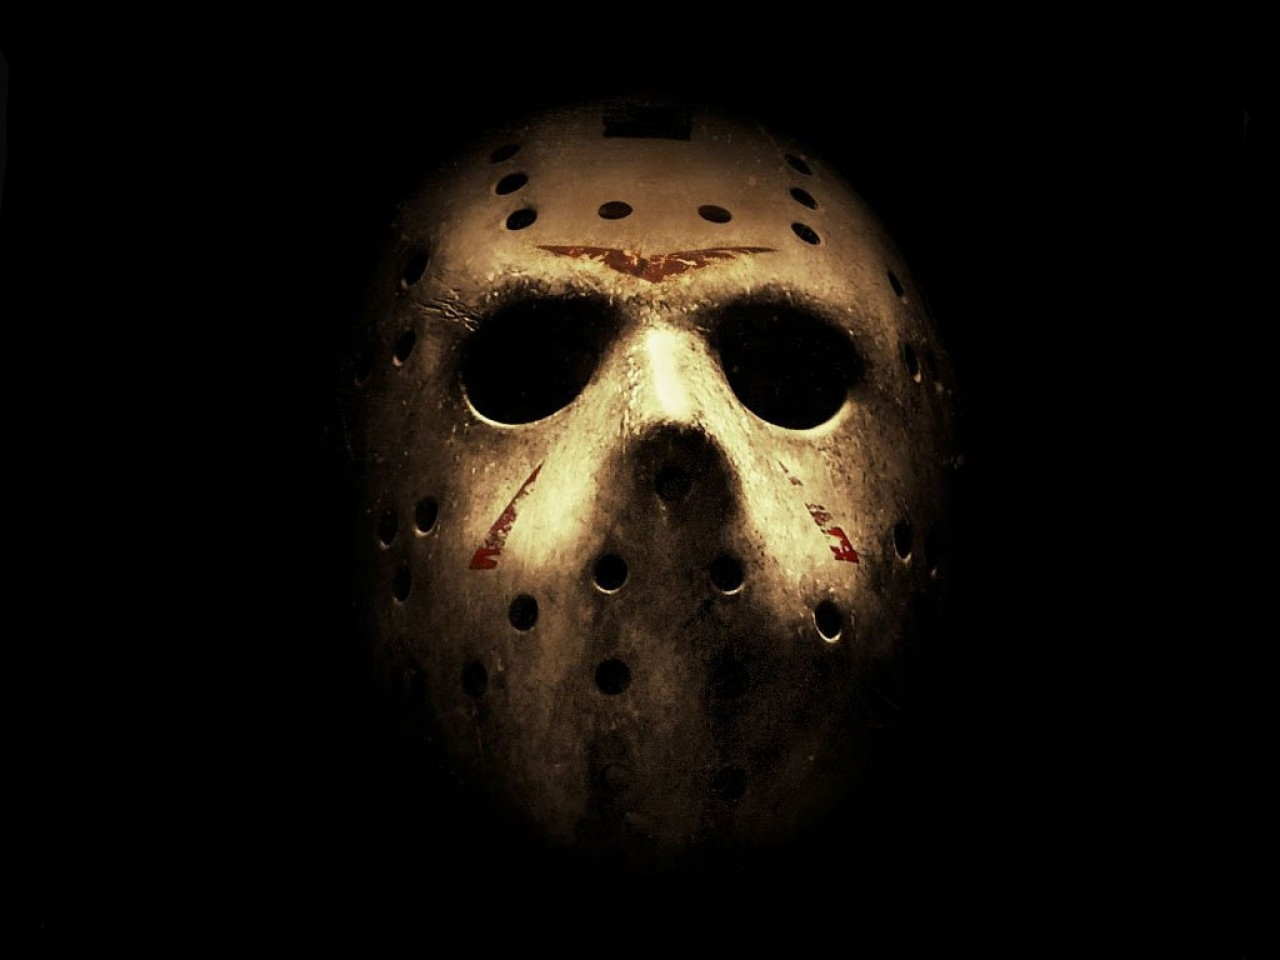 friday the 13th wallpapers (high quality) - all hd wallpapers